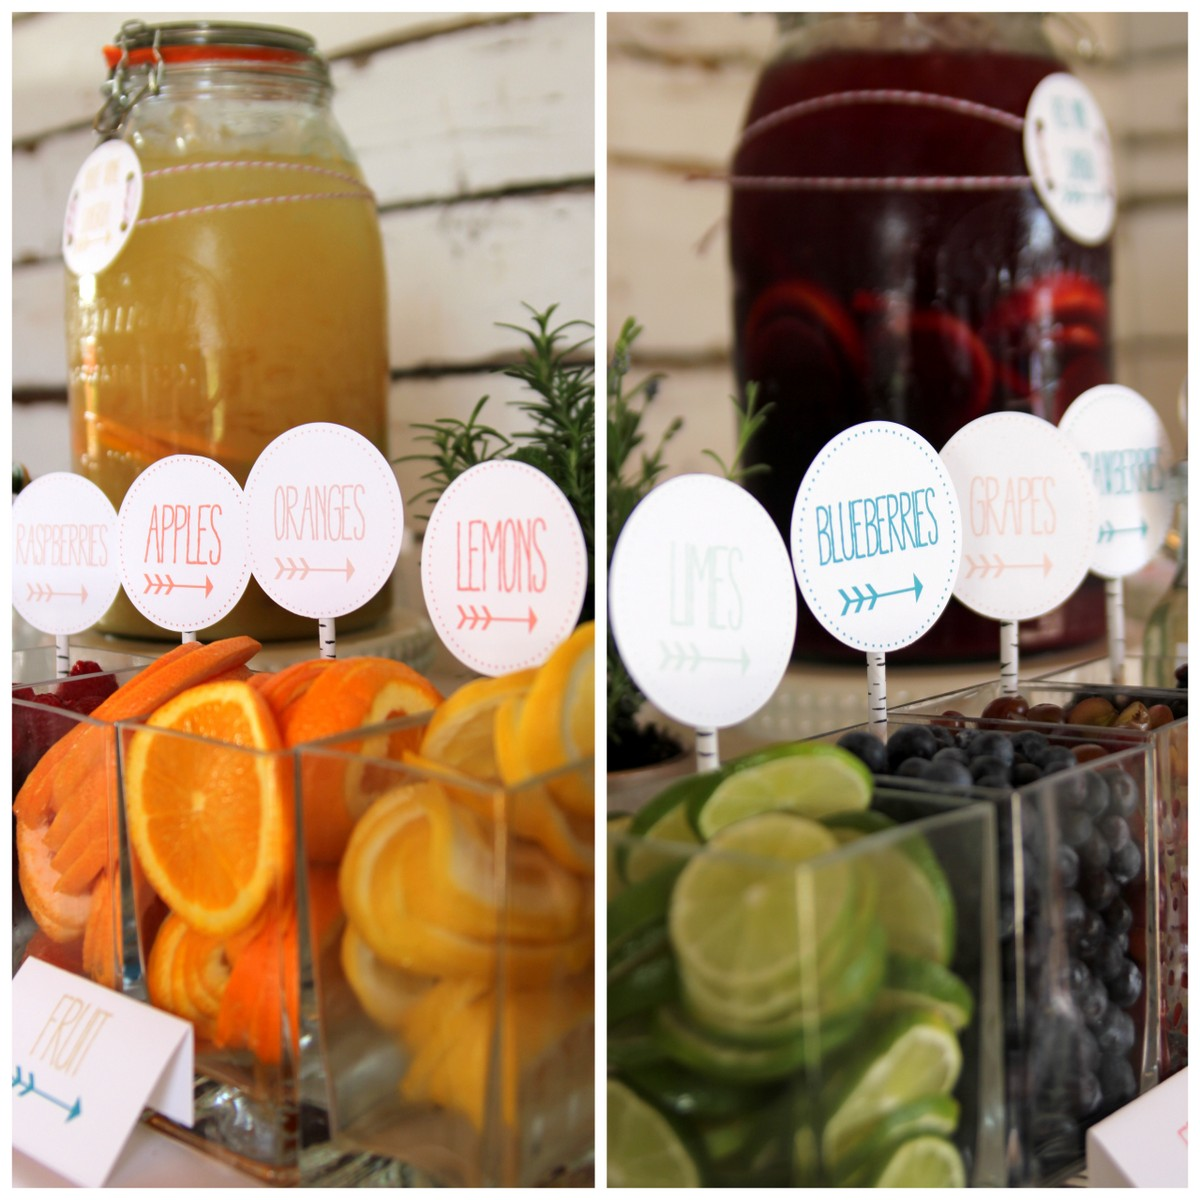 The ultimate sangria bar summer s best drink station Good fruity drinks to get at a bar